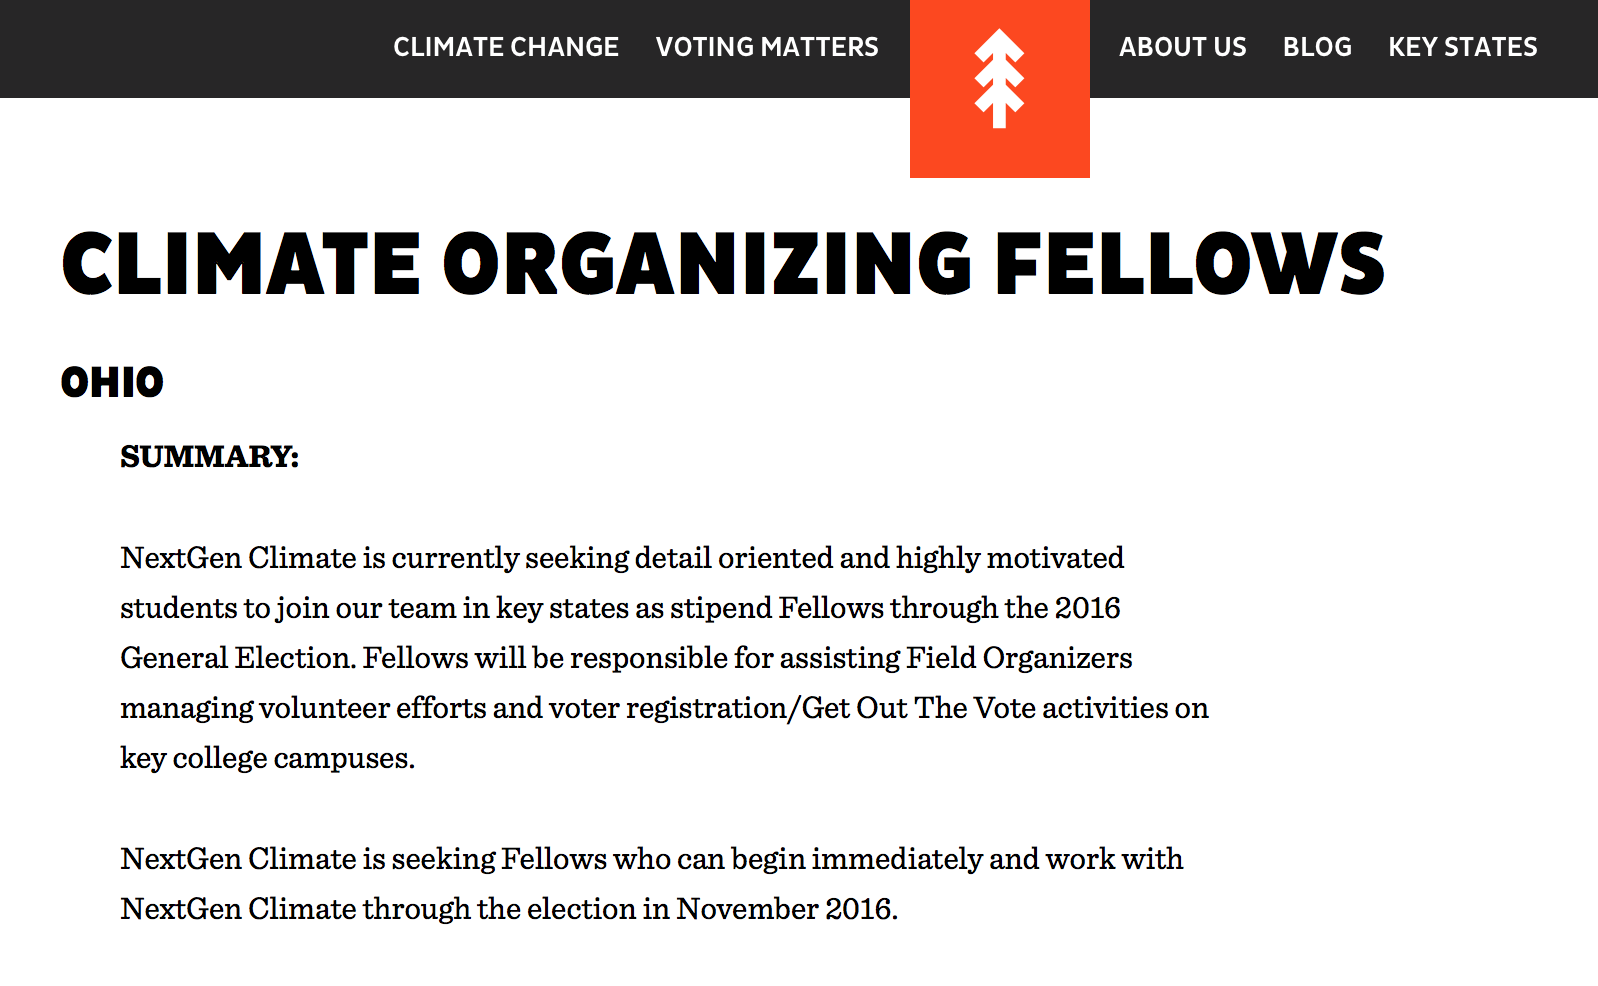 Climate Organizing Fellows